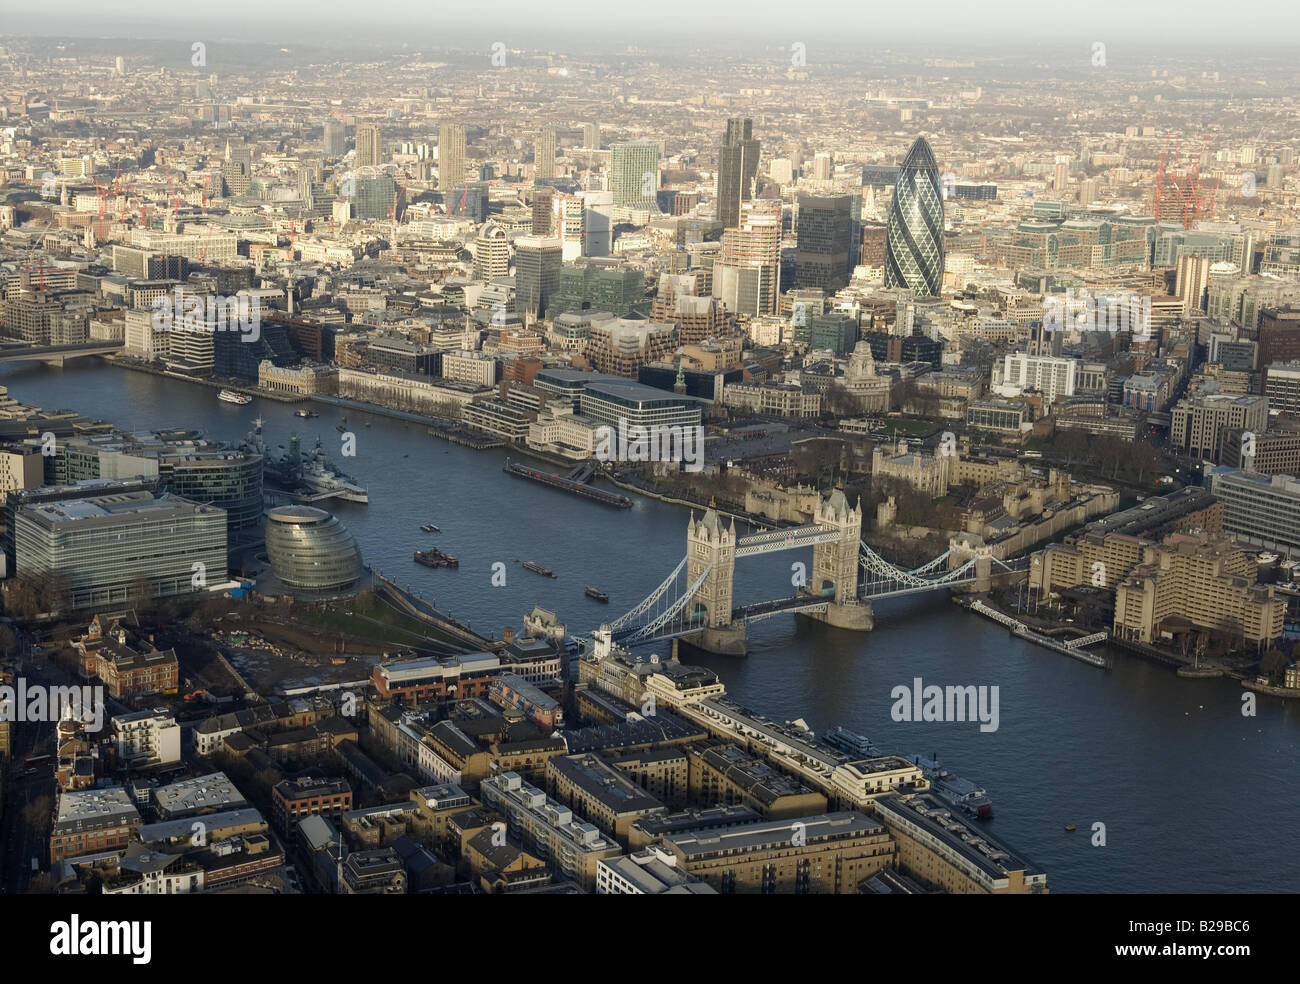 The City of London Date 12 03 2008 Ref ZB648 111149 0051 COMPULSORY CREDIT World Pictures Photoshot - Stock Image